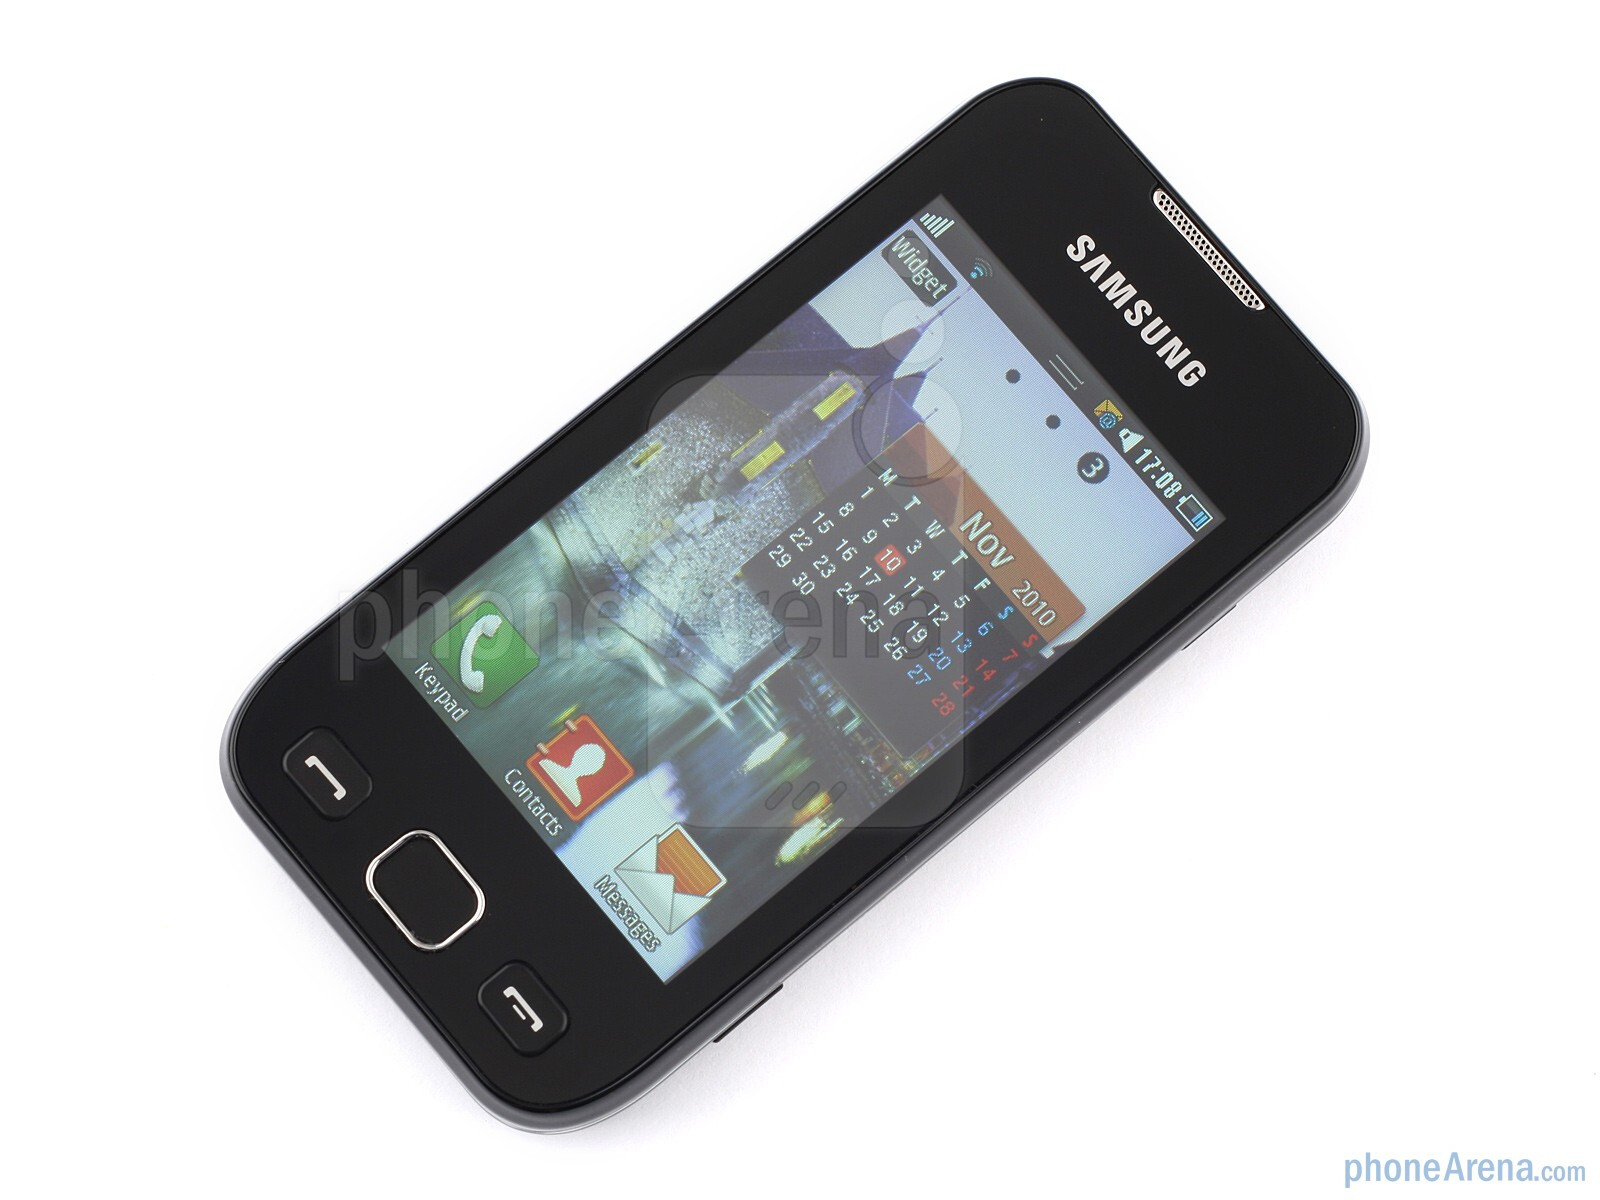 Samsung wave bada games and apps